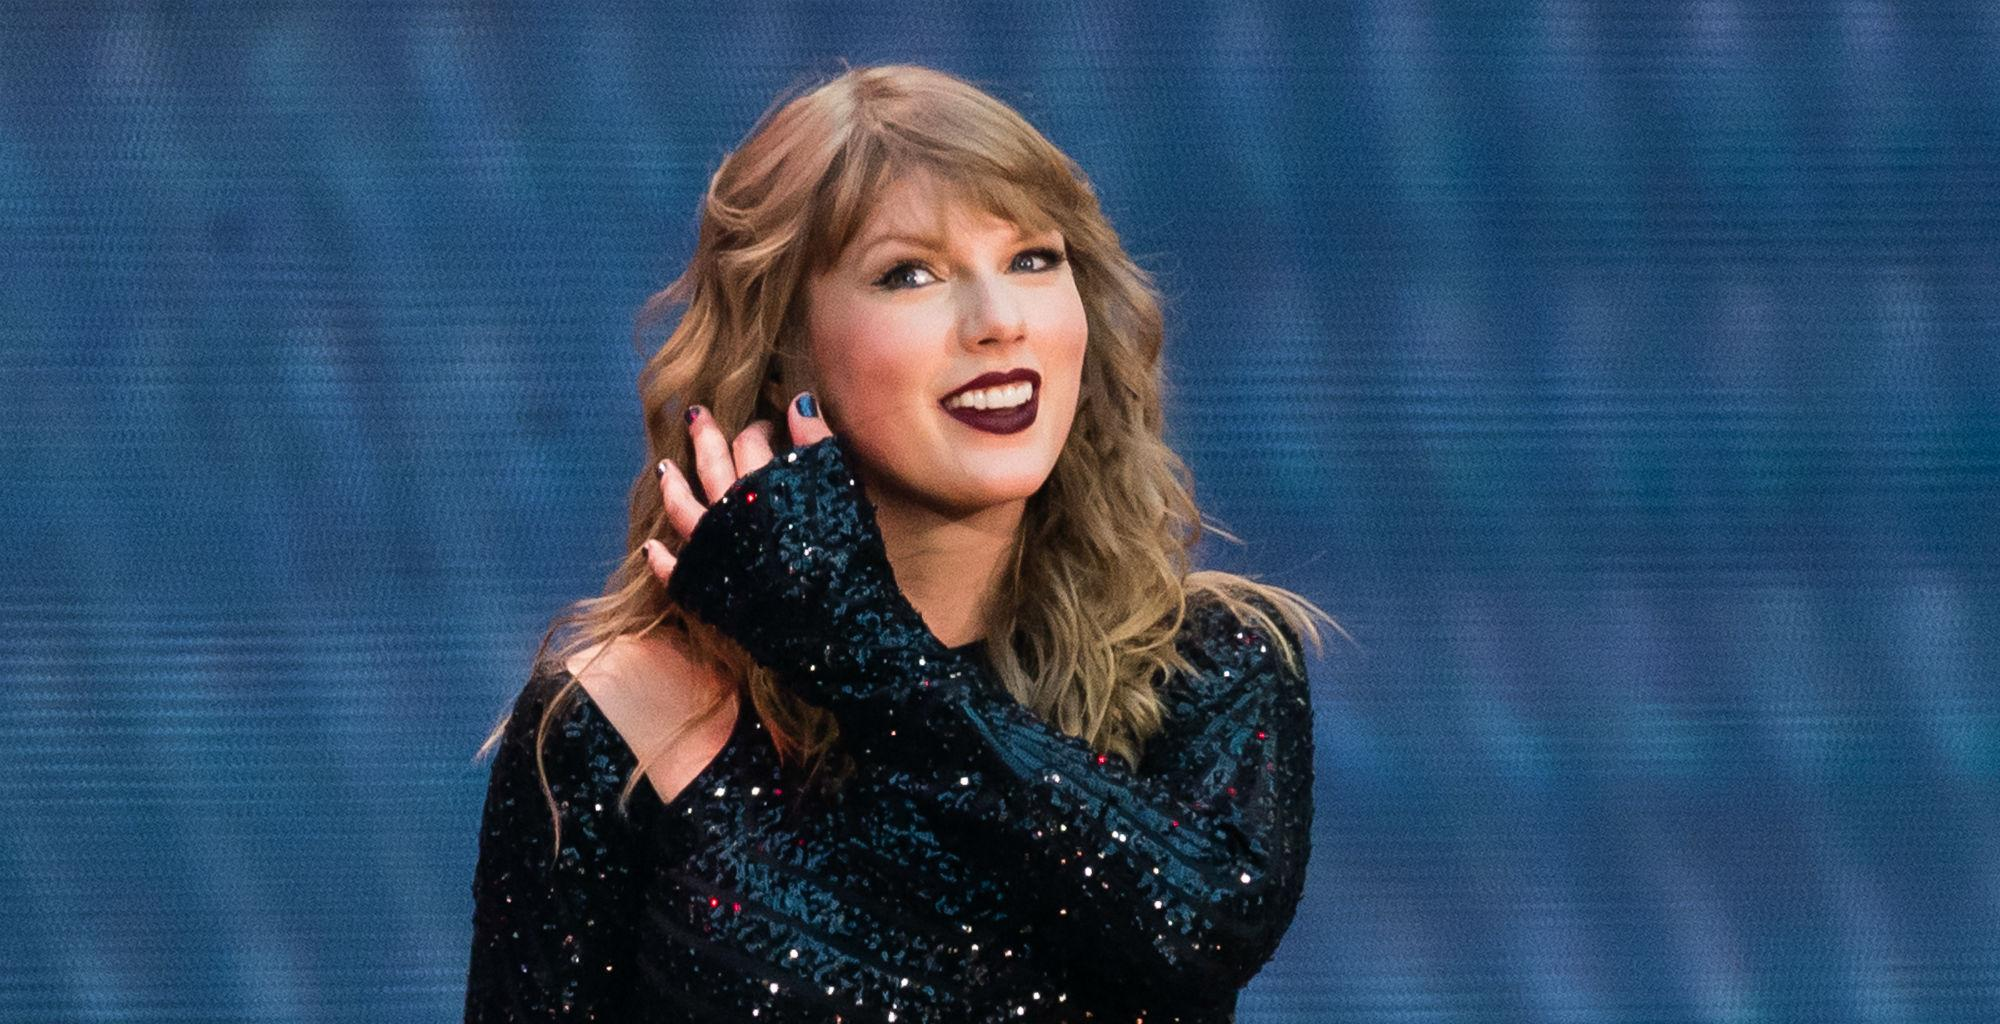 Taylor Swift Reportedly Misses Being On Stage - Can't Wait To Get Back On Tour!